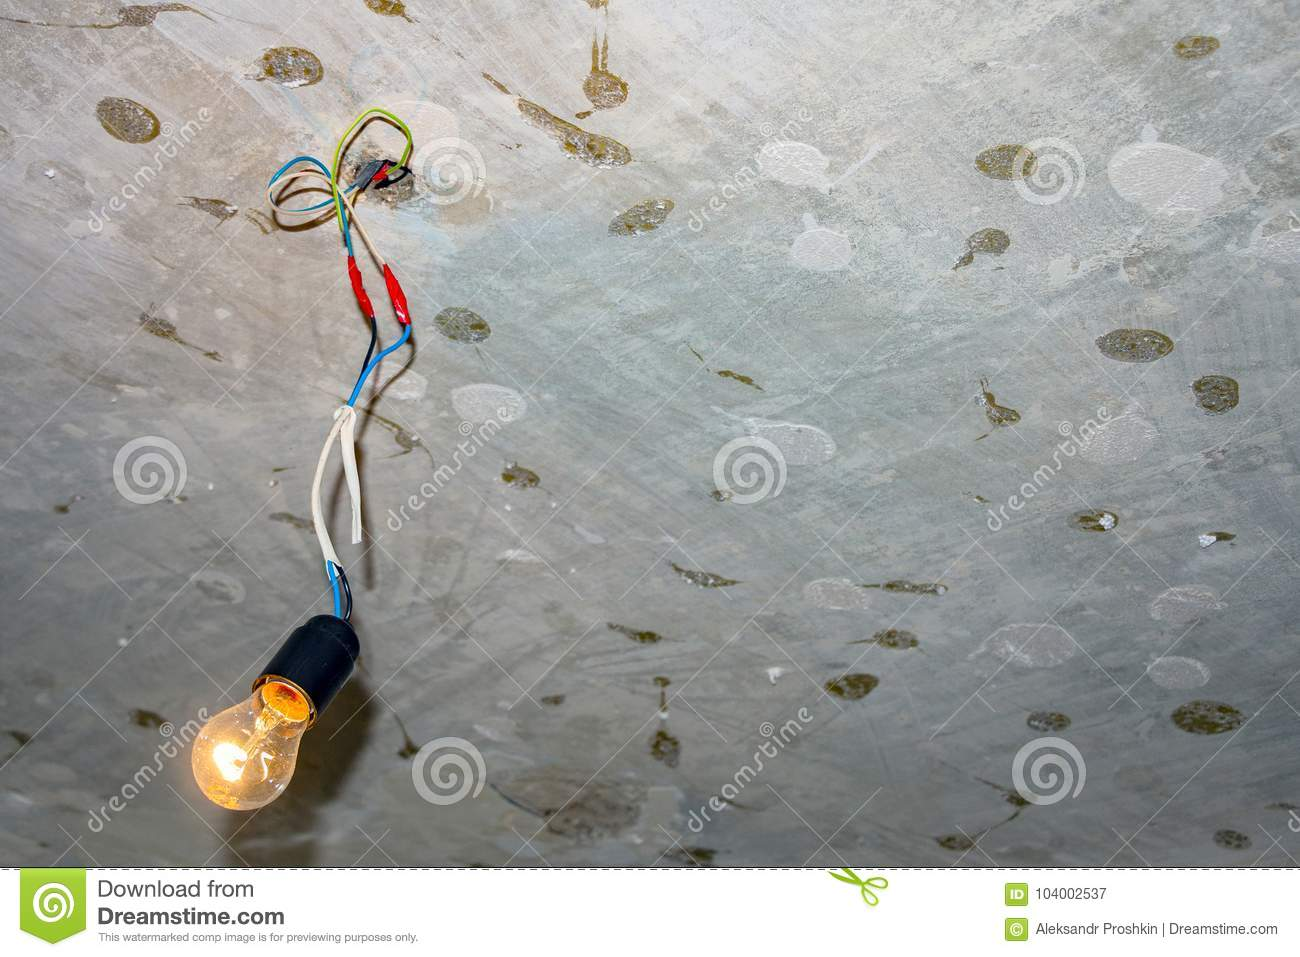 hight resolution of bad wiring leading to the bulb